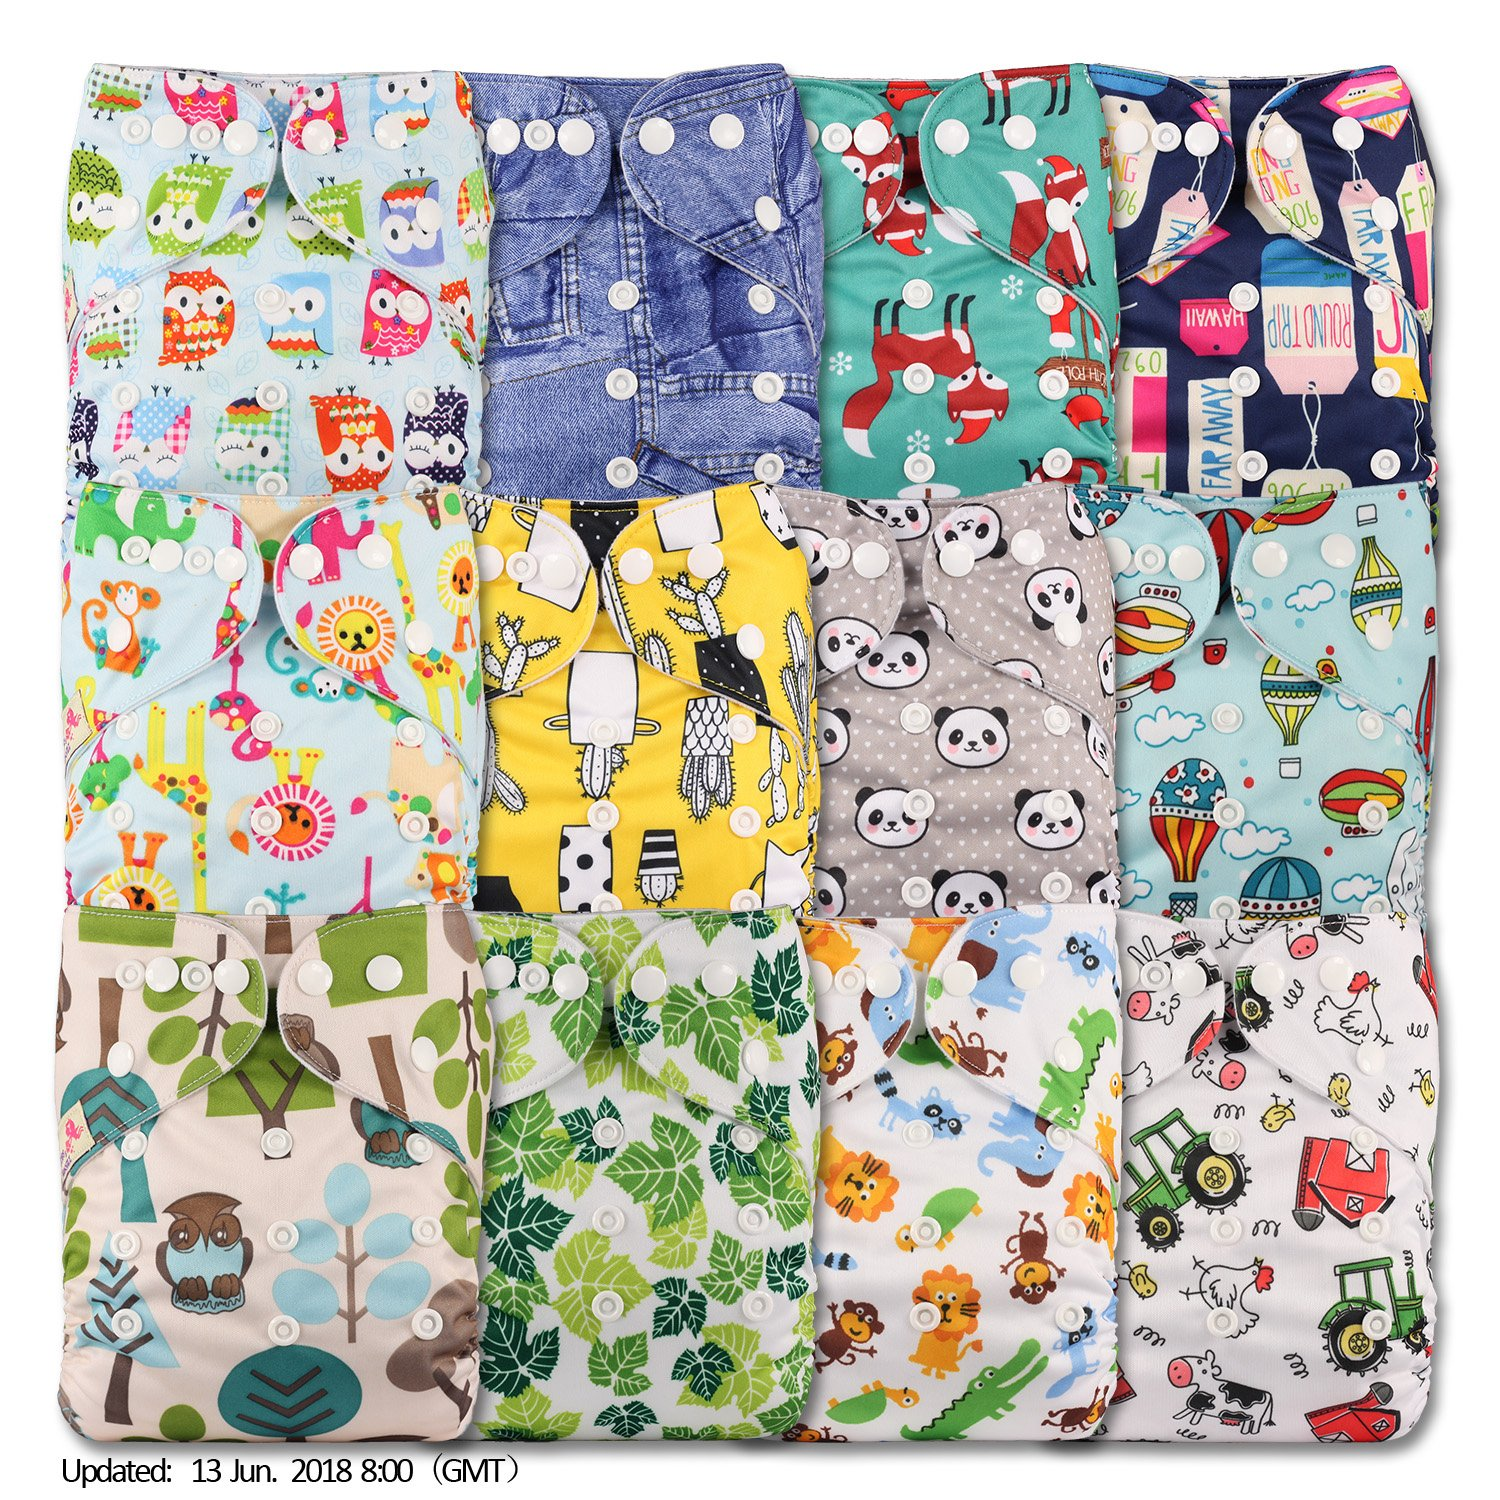 Littles & Bloomz, Reusable Pocket Cloth Nappy, Fastener: Popper, Set of 12, Patterns 1206, Without Insert YellowBloom